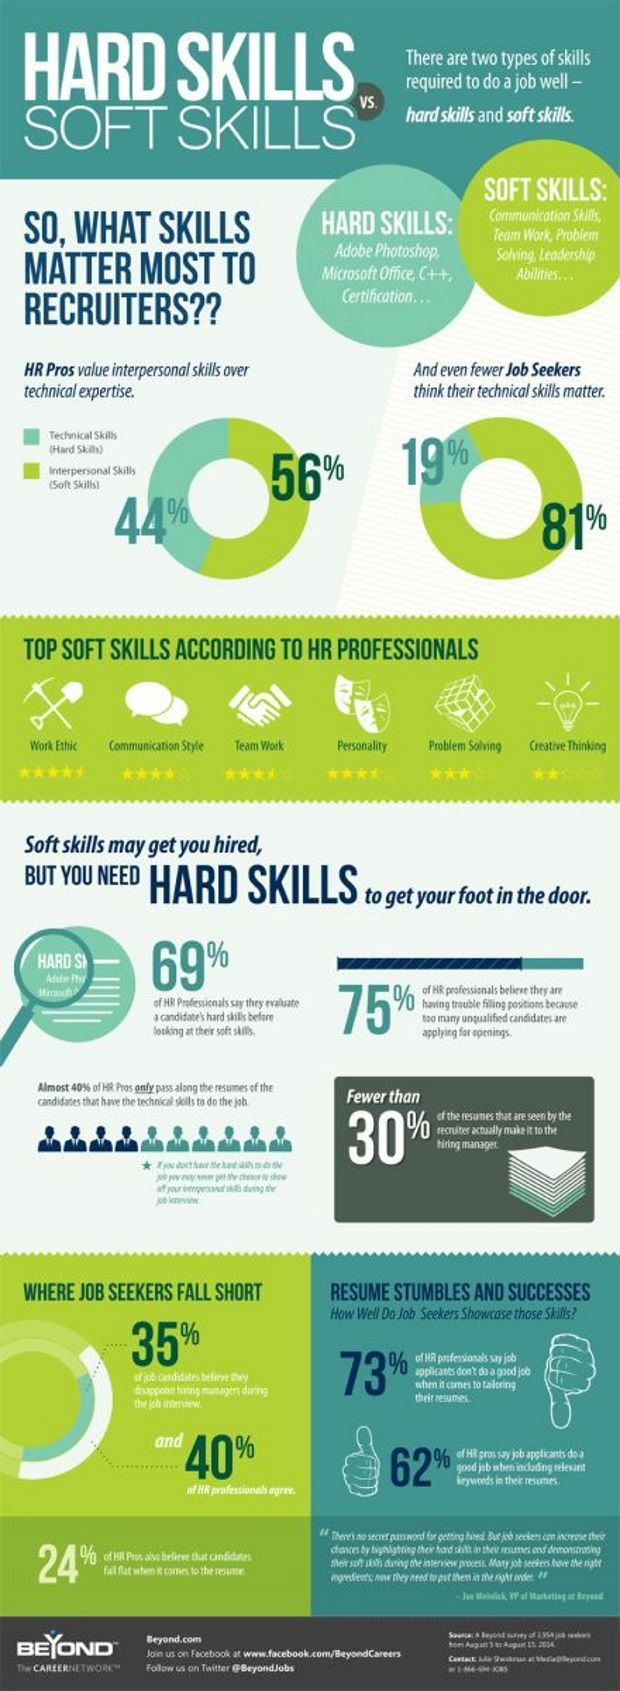 Hard Versus Soft Skills What You Need to Know to Get Hired The Savvy Intern by YouTern